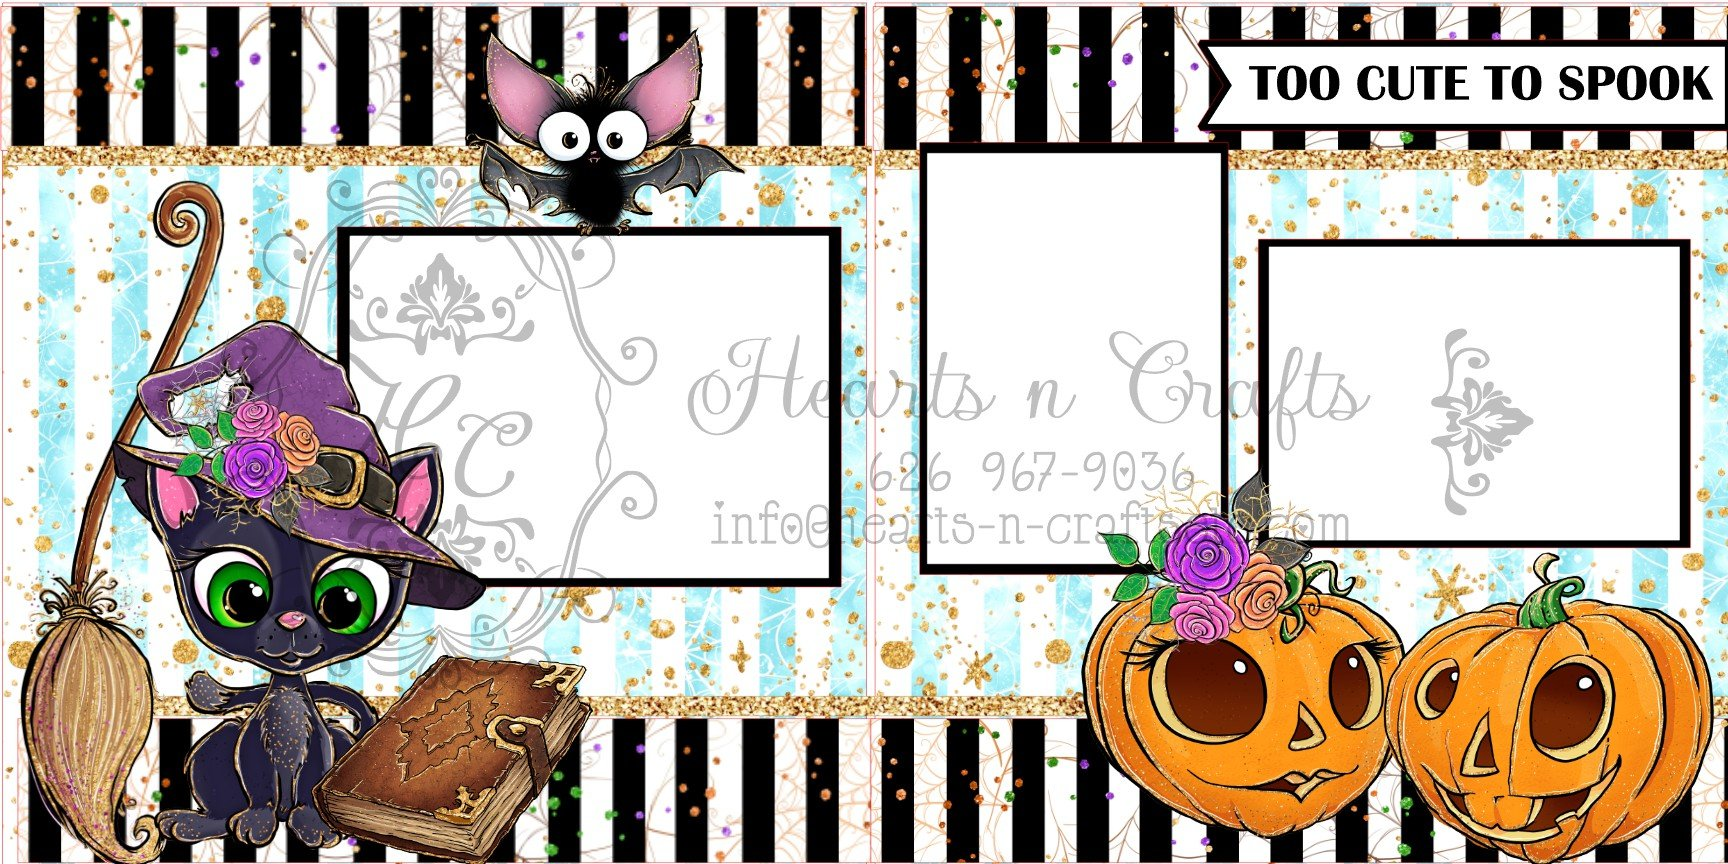 Too Cute to Spook 2 page Layout